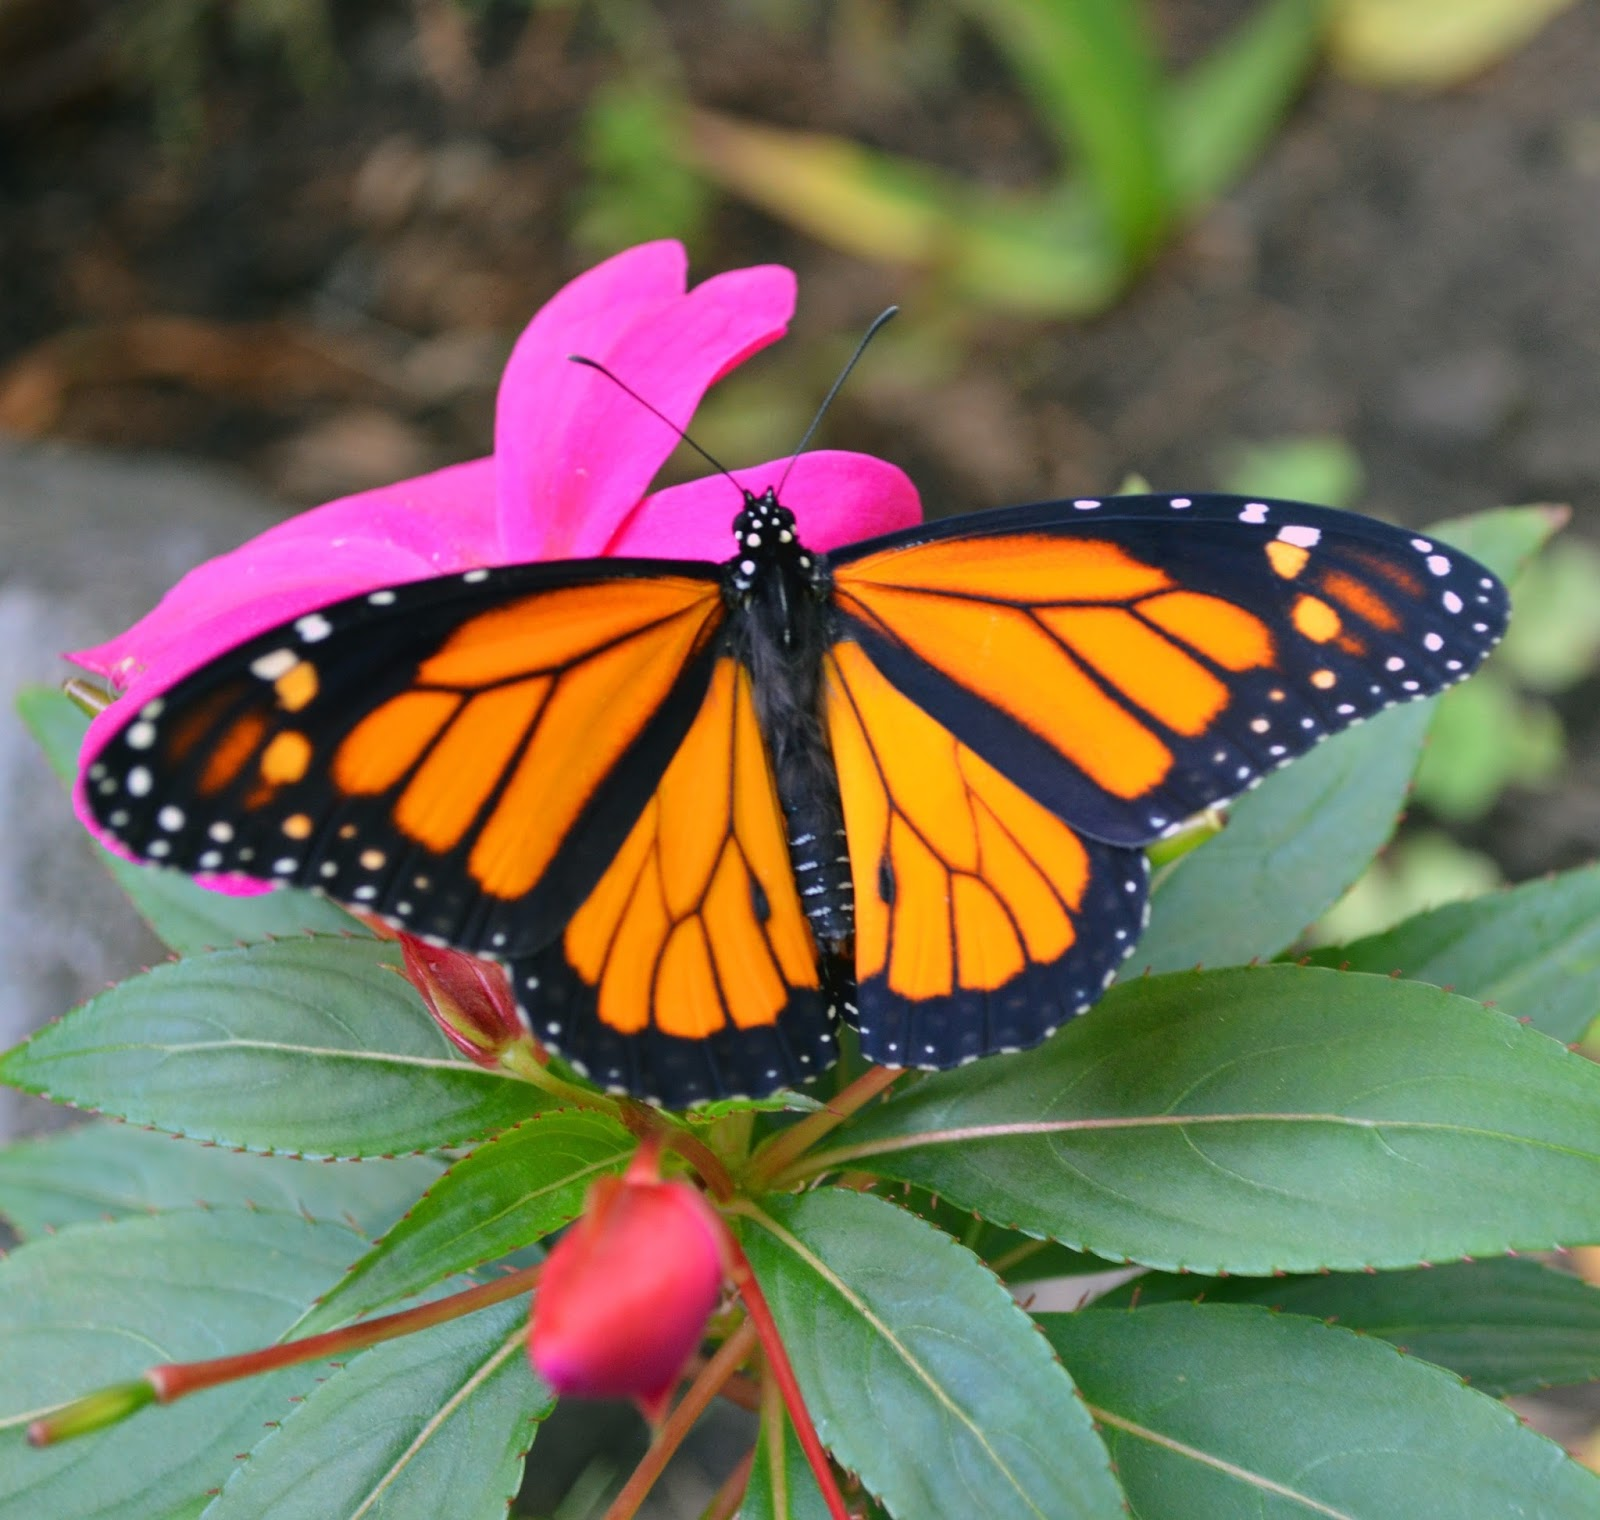 Image of a beautiful monarch butterfly.